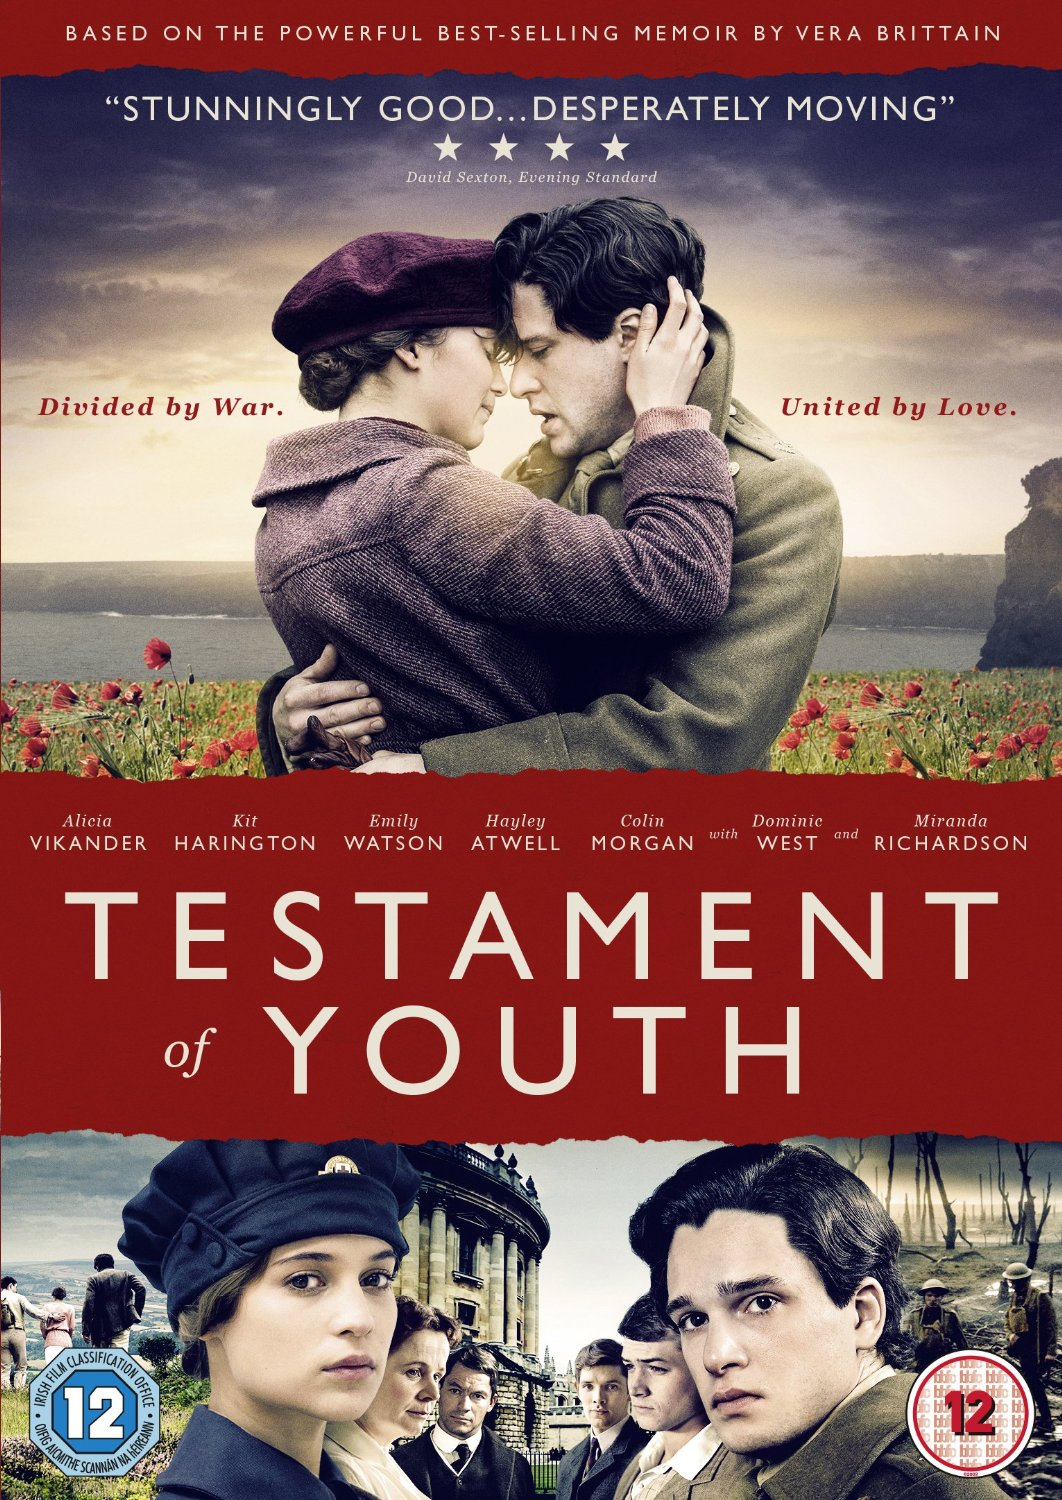 The Mumpsimus The Perils Of Biopics Life In Squares And Testament Of Youth